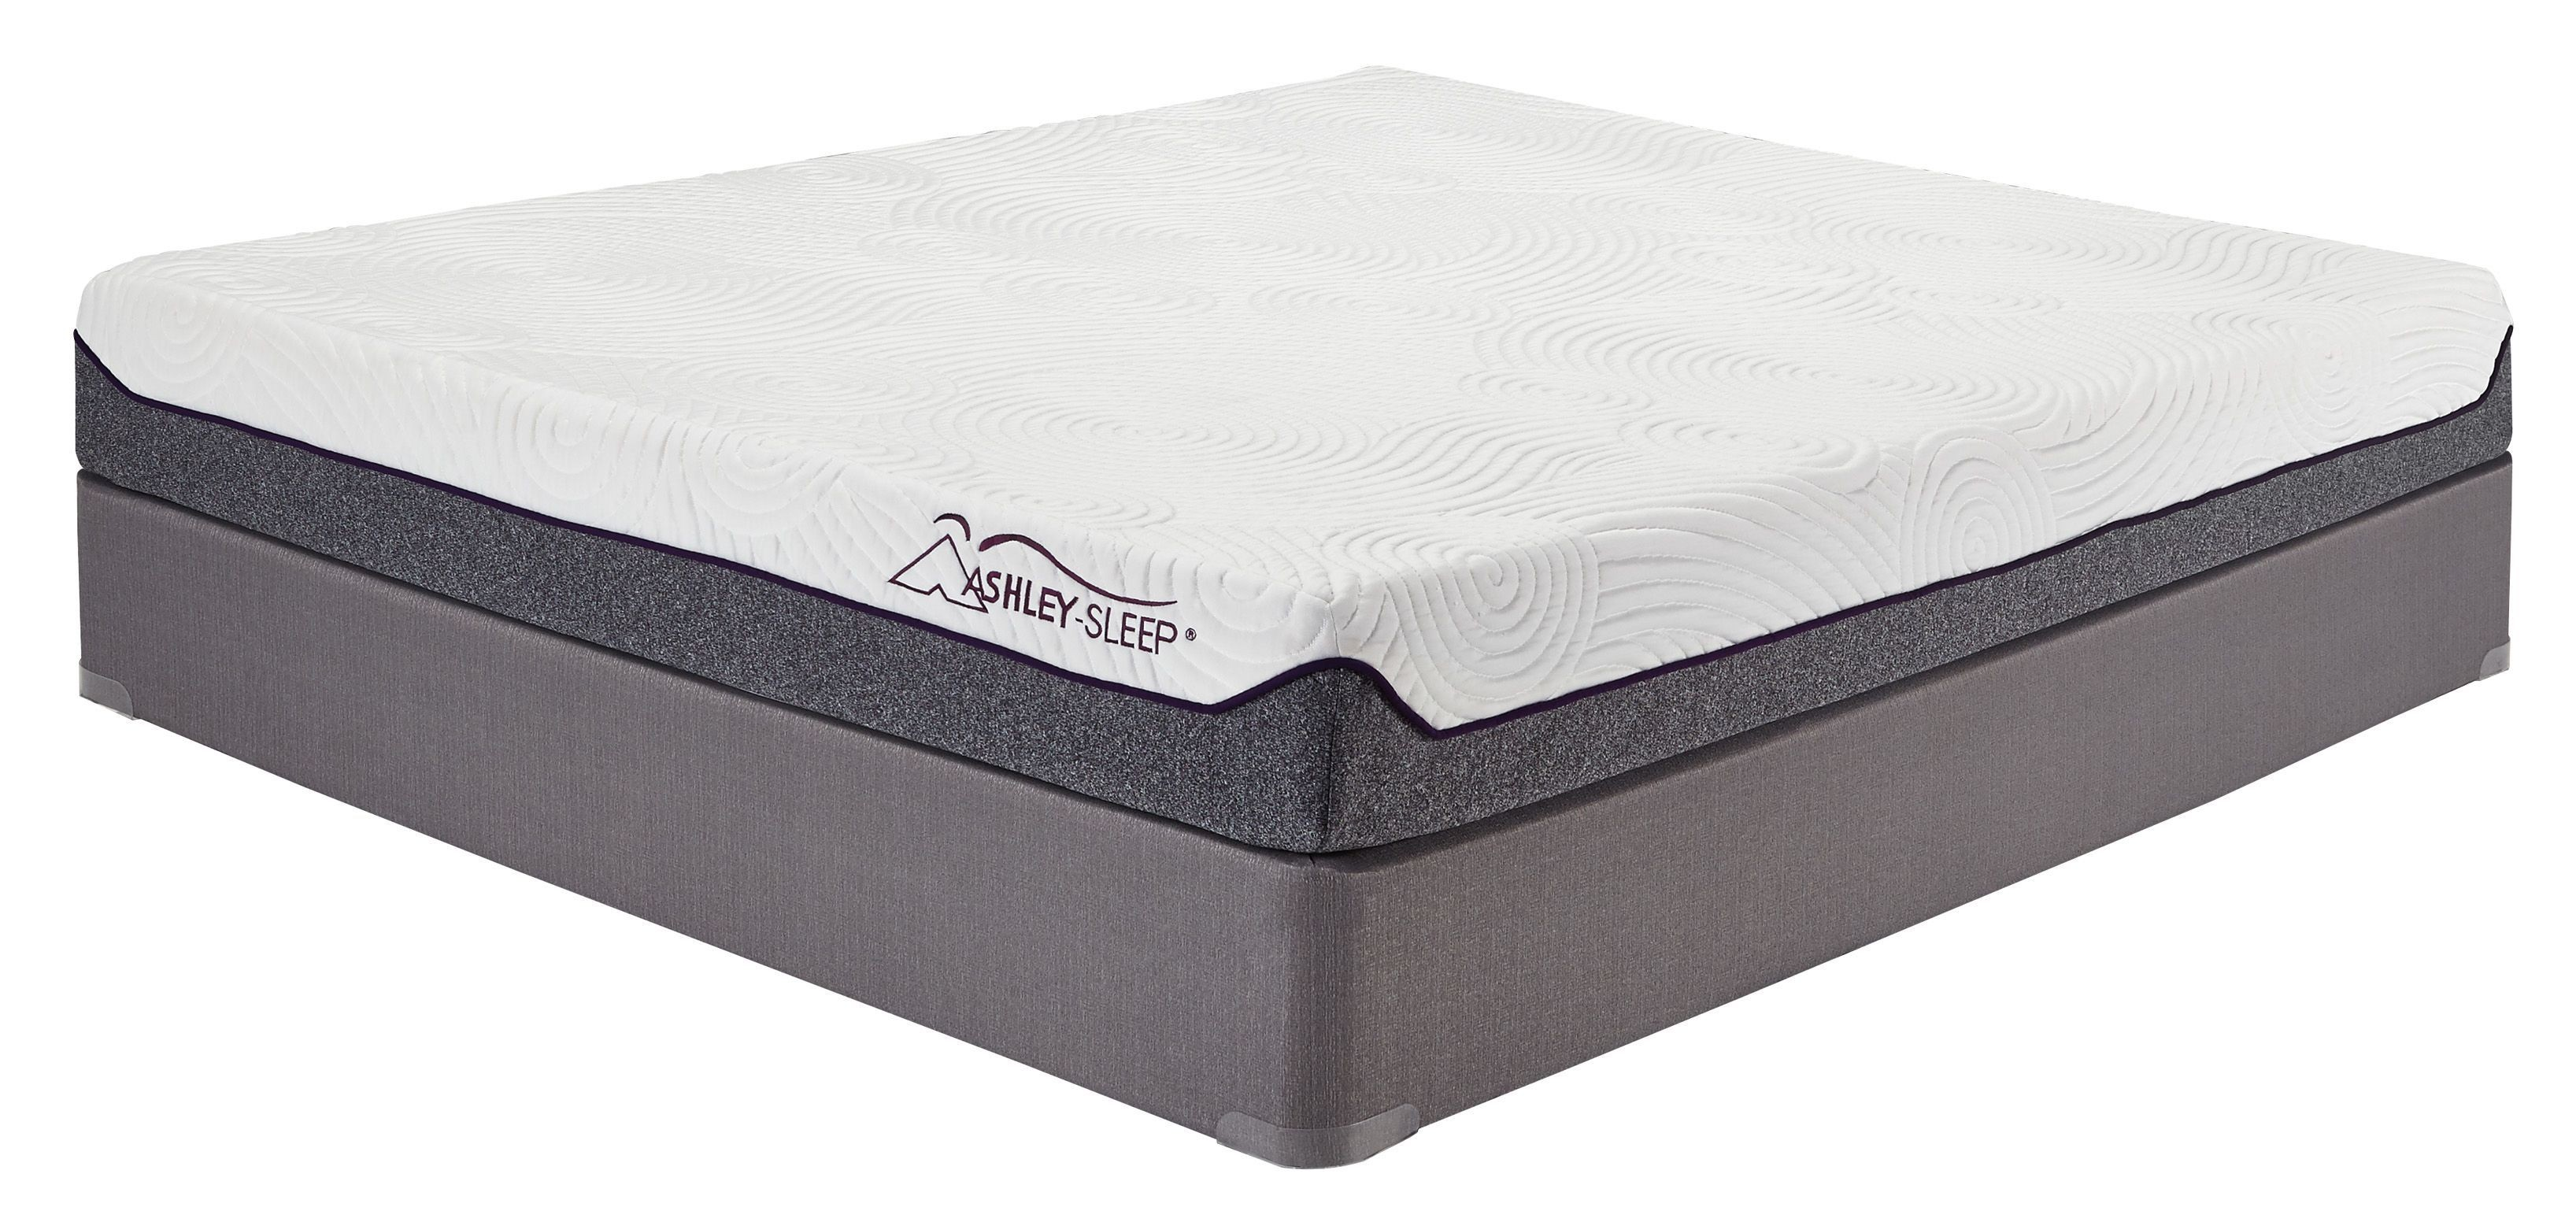 8 Inch Memory Foam White Queen Mattress M Ashley